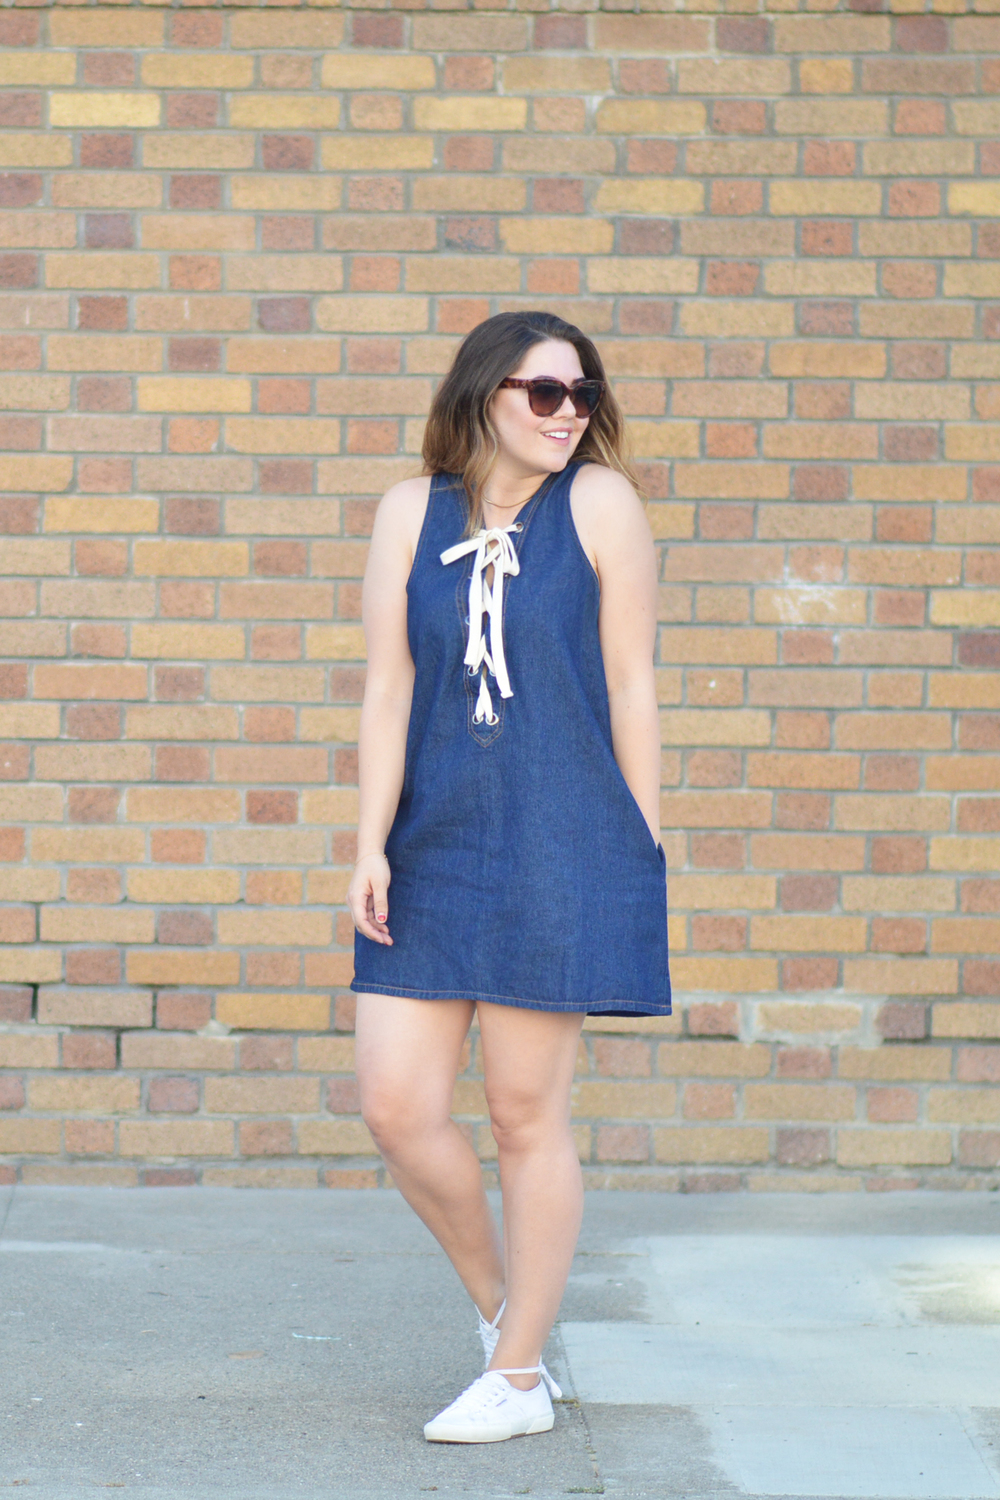 Denim Lace-up dress via. www.birdieshoots.com